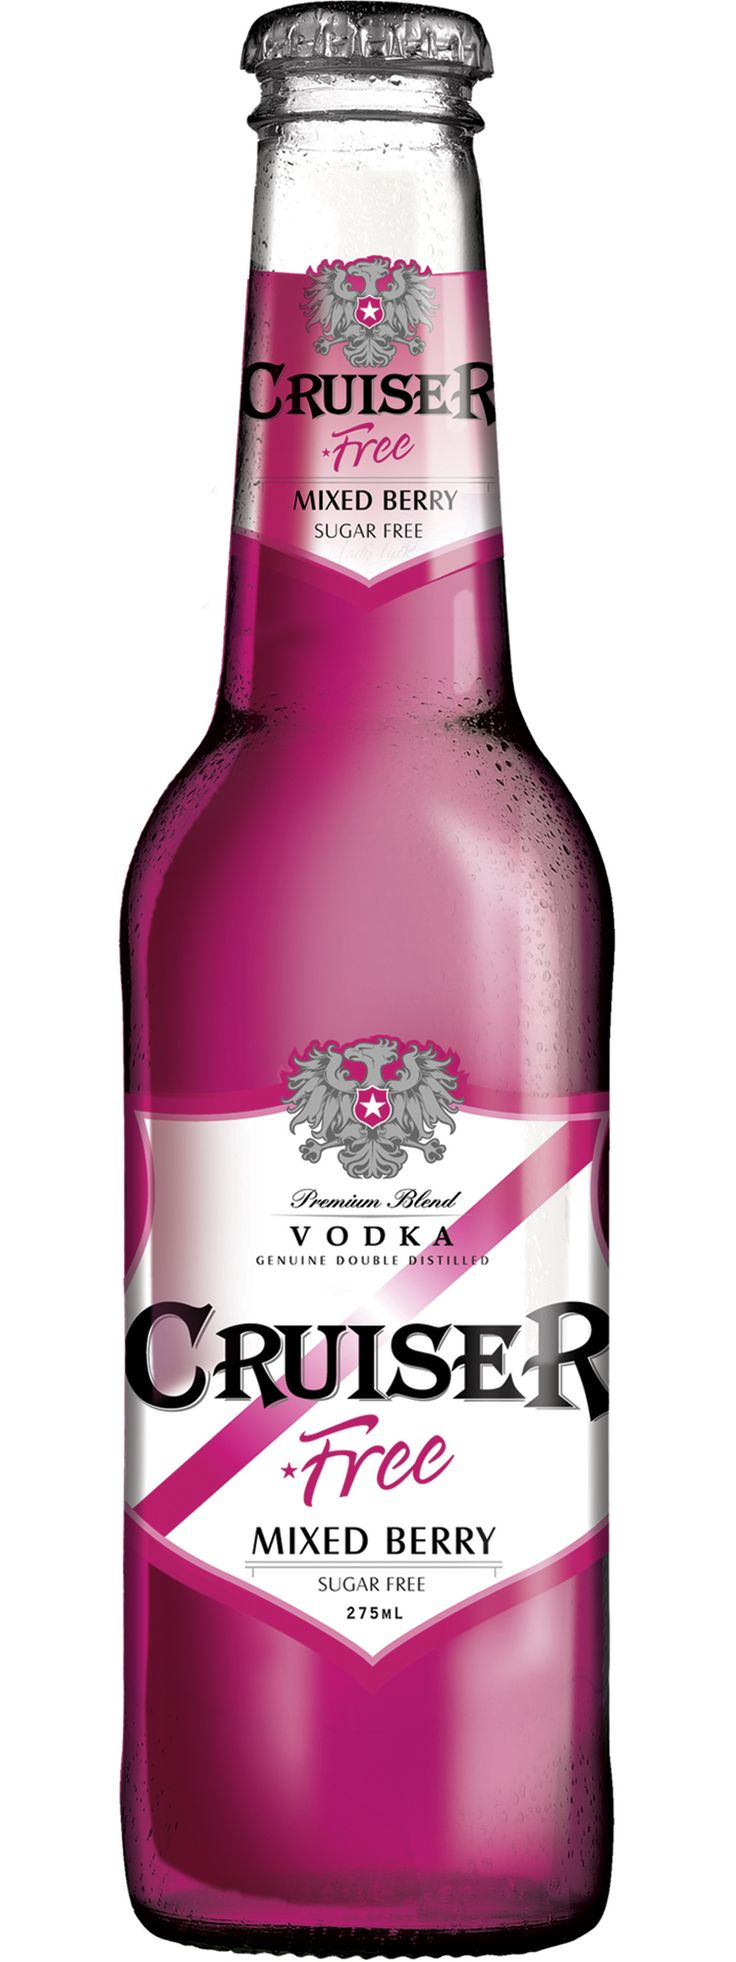 Sugar Free Wine | Vodka Cruiser Sugar Free Mixed